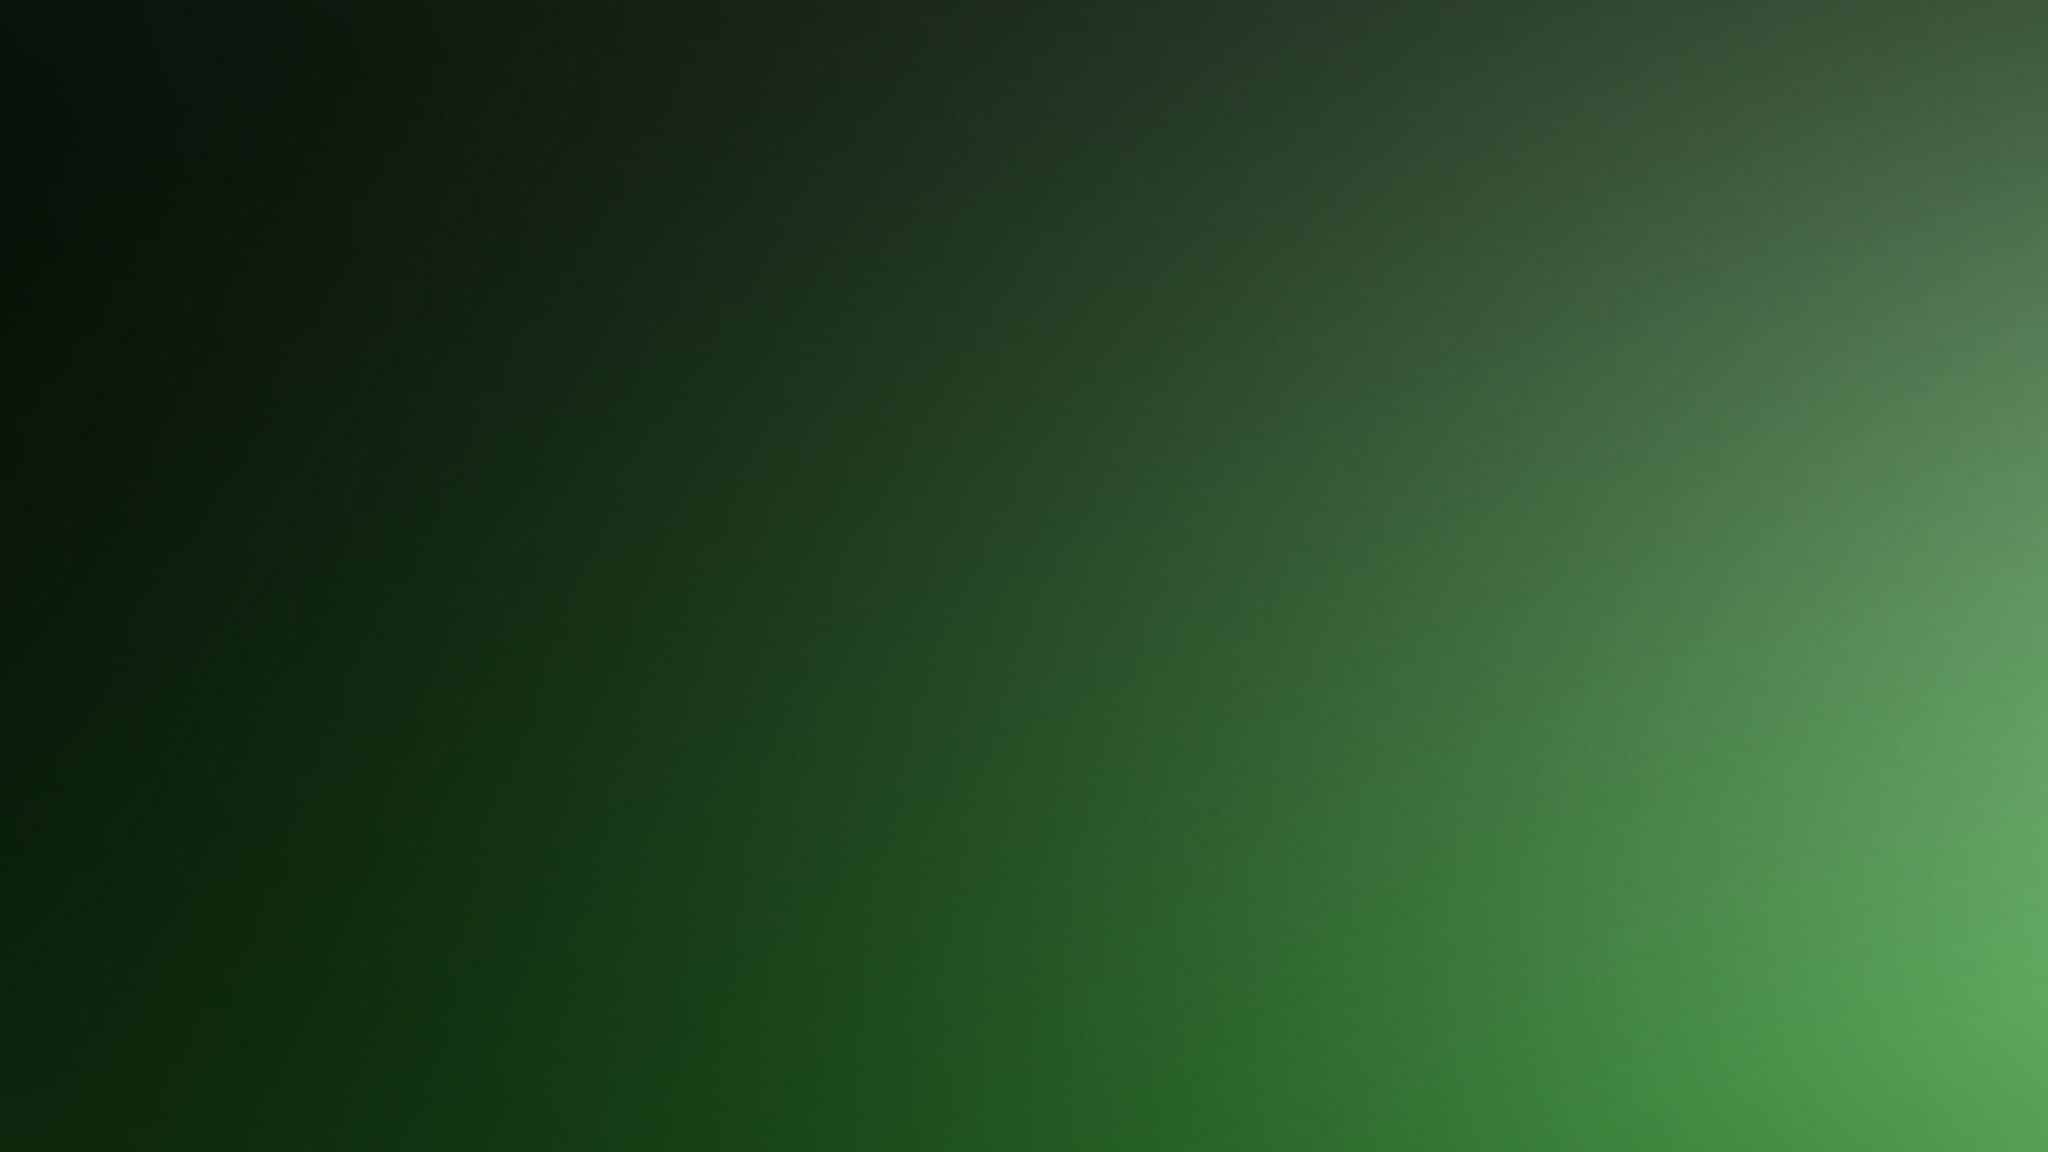 Preview wallpaper green, background, texture, solid, color 2048×1152